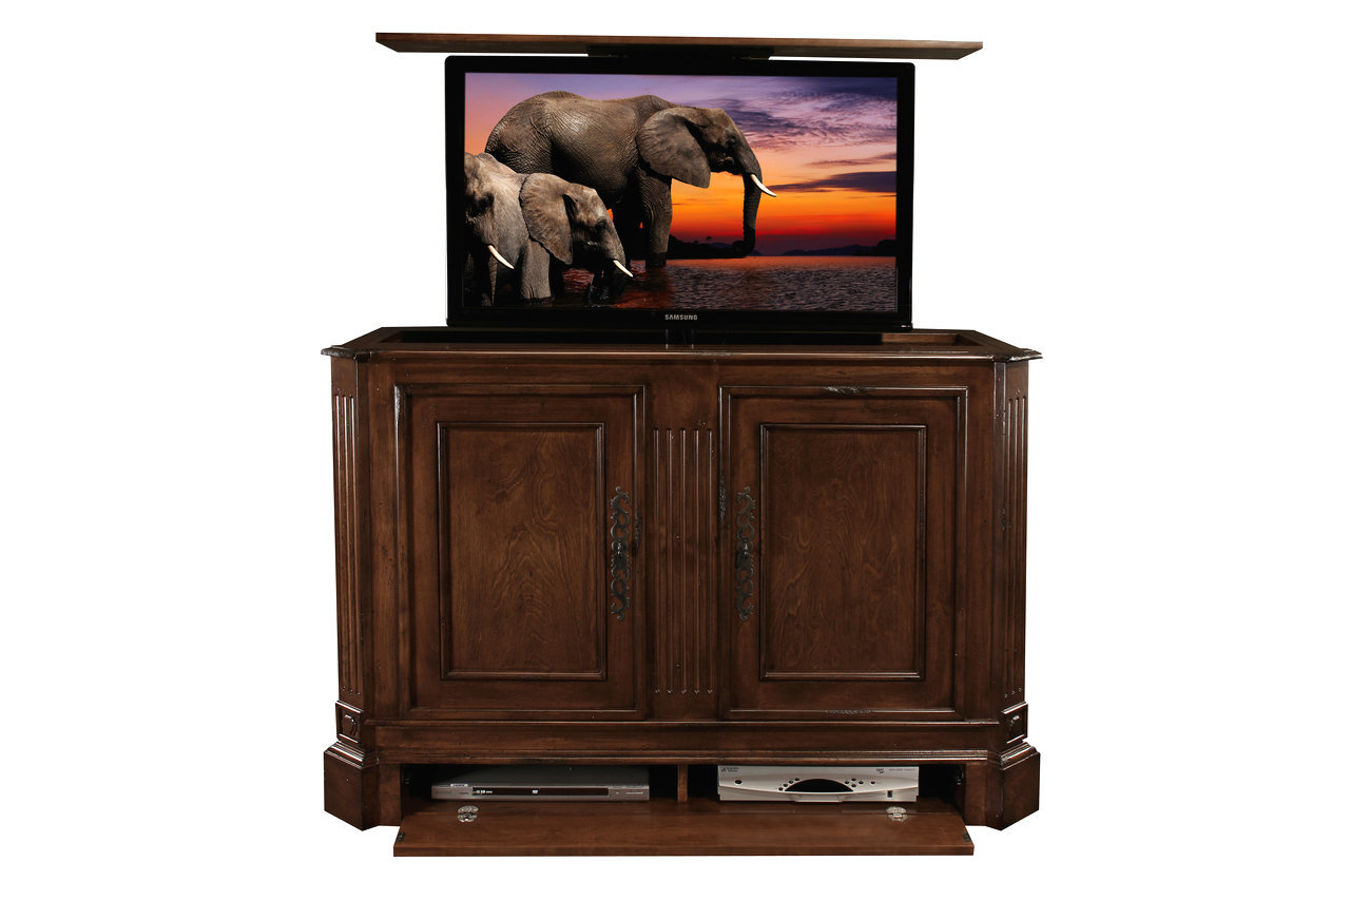 custom tv lift sierra tv lift cabinet cabinet tronix. Black Bedroom Furniture Sets. Home Design Ideas